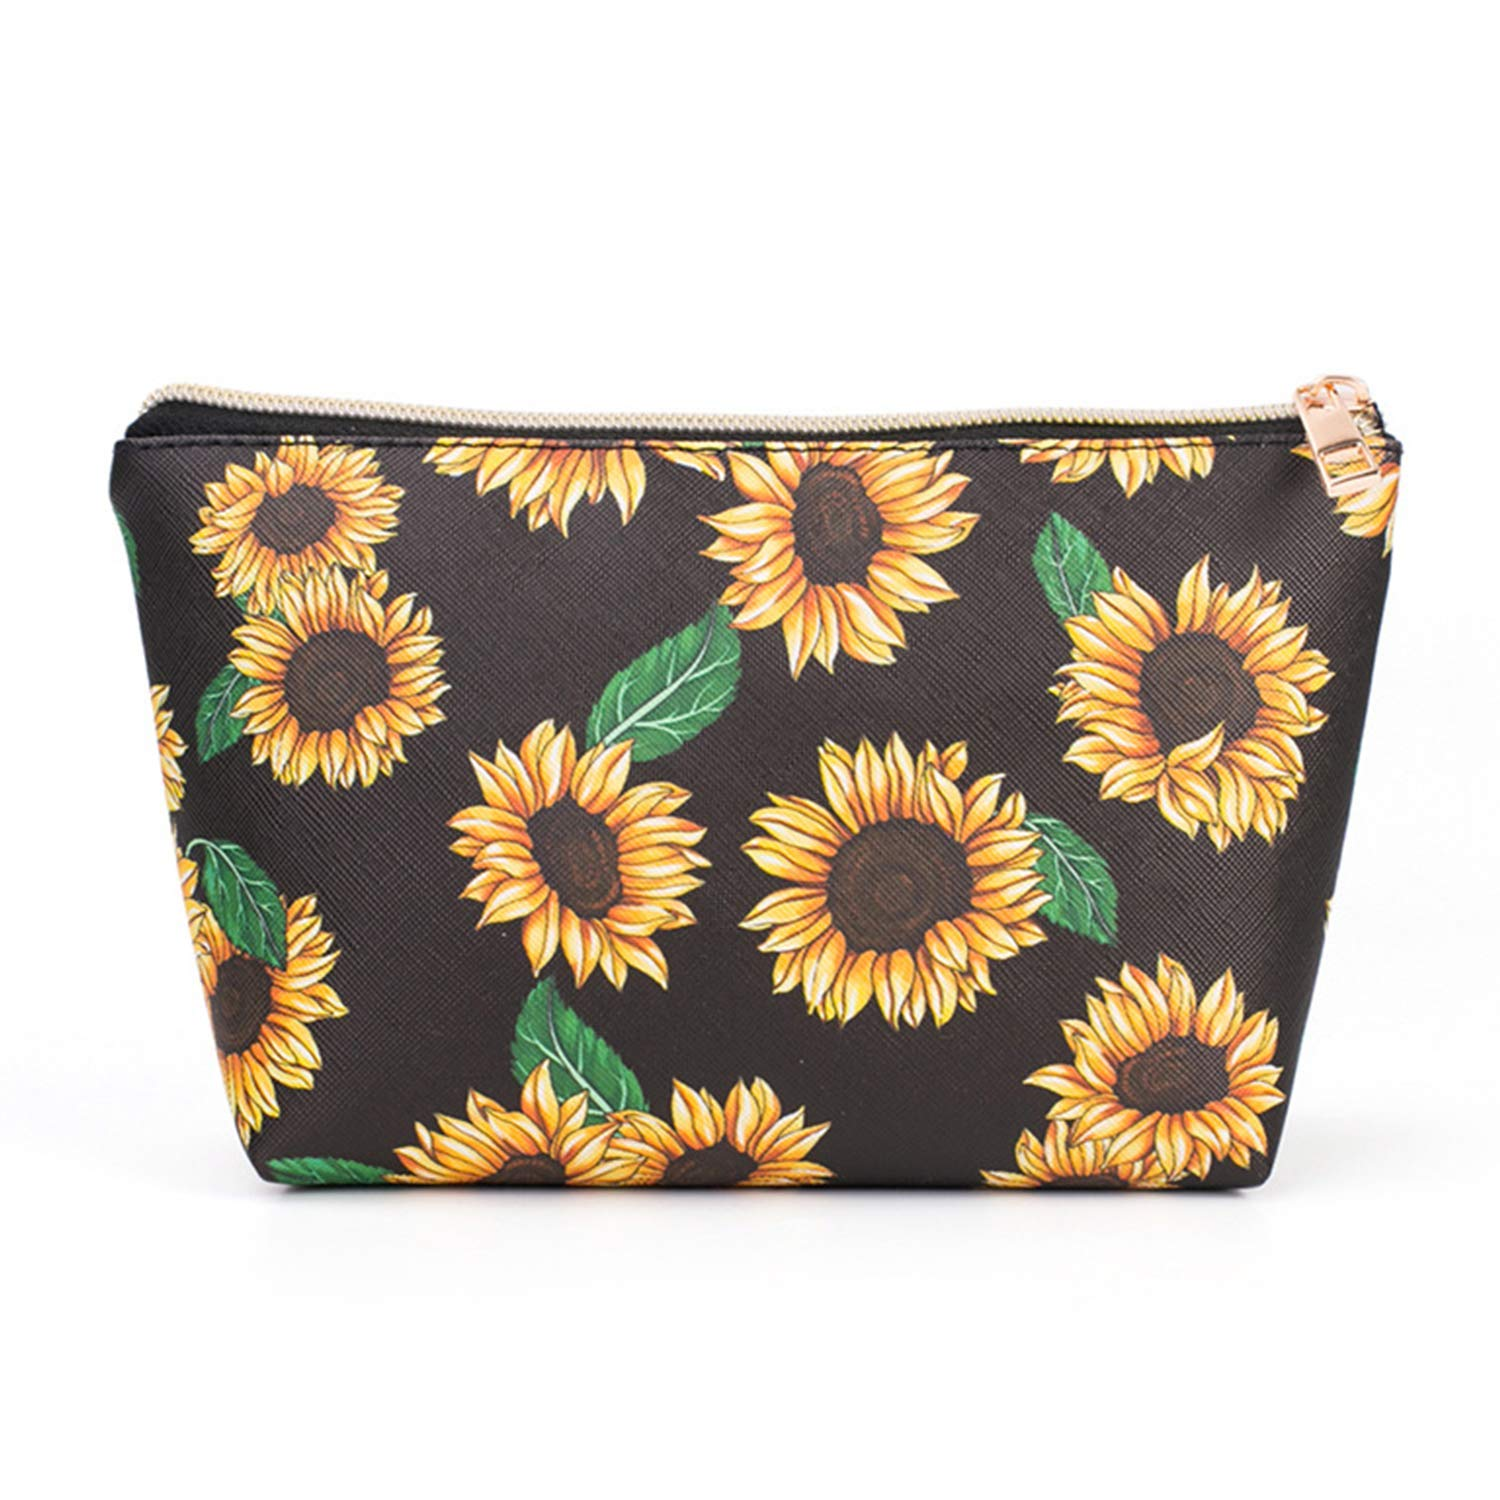 Sunflower Black Women Travel Makeup Bags,Cosmetic Cases Waterproof Floral Travel Purse Portable Zipper Makeup Bags Organizers